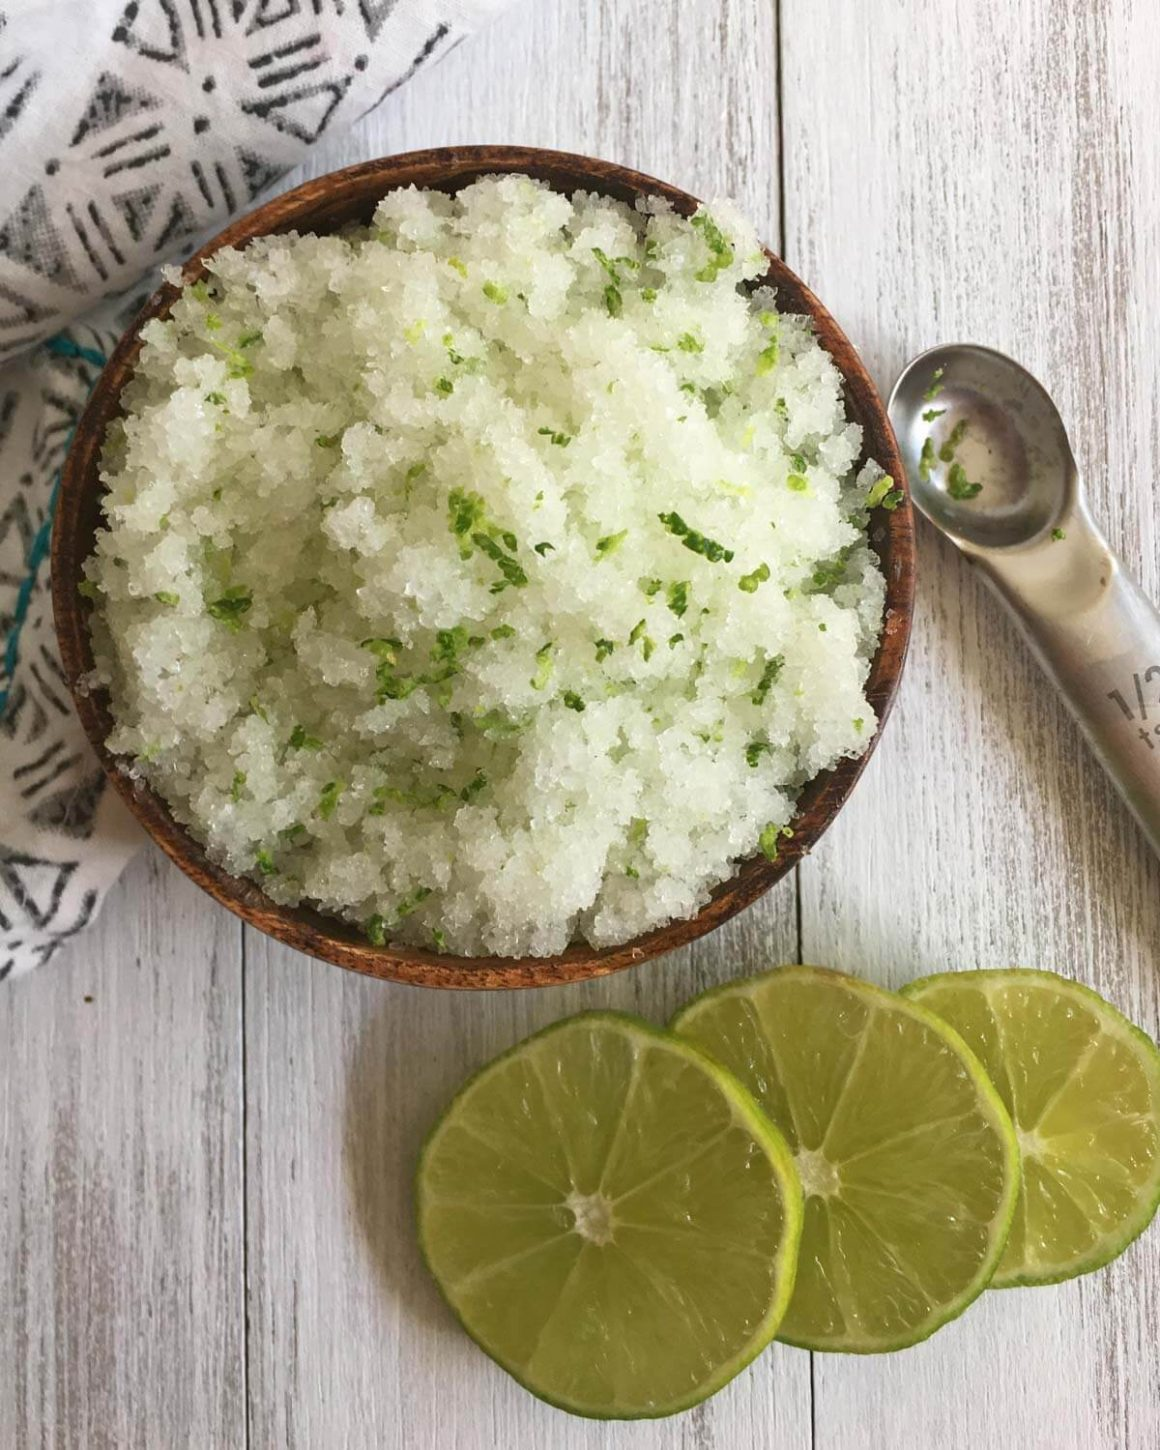 50 Easy Handmade Gift Ideas You'll Love: Lime Sea Salt Body Scrub from The Crunchy Chronicles